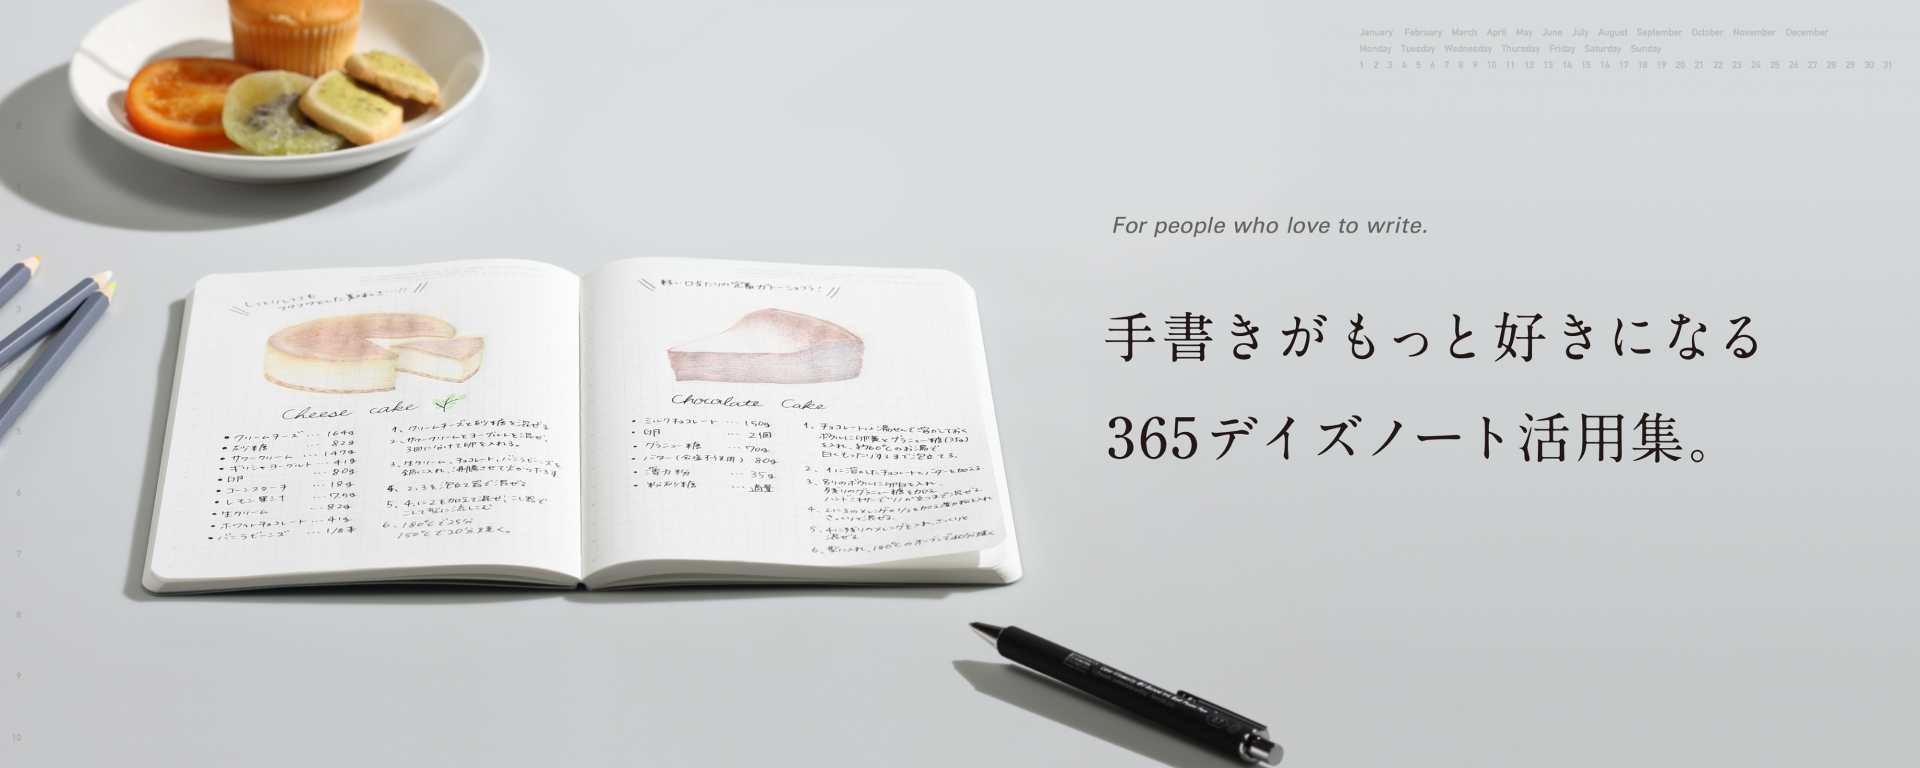 For people who love to write 手書きがもっと好きになる 365デイズノート活用集。